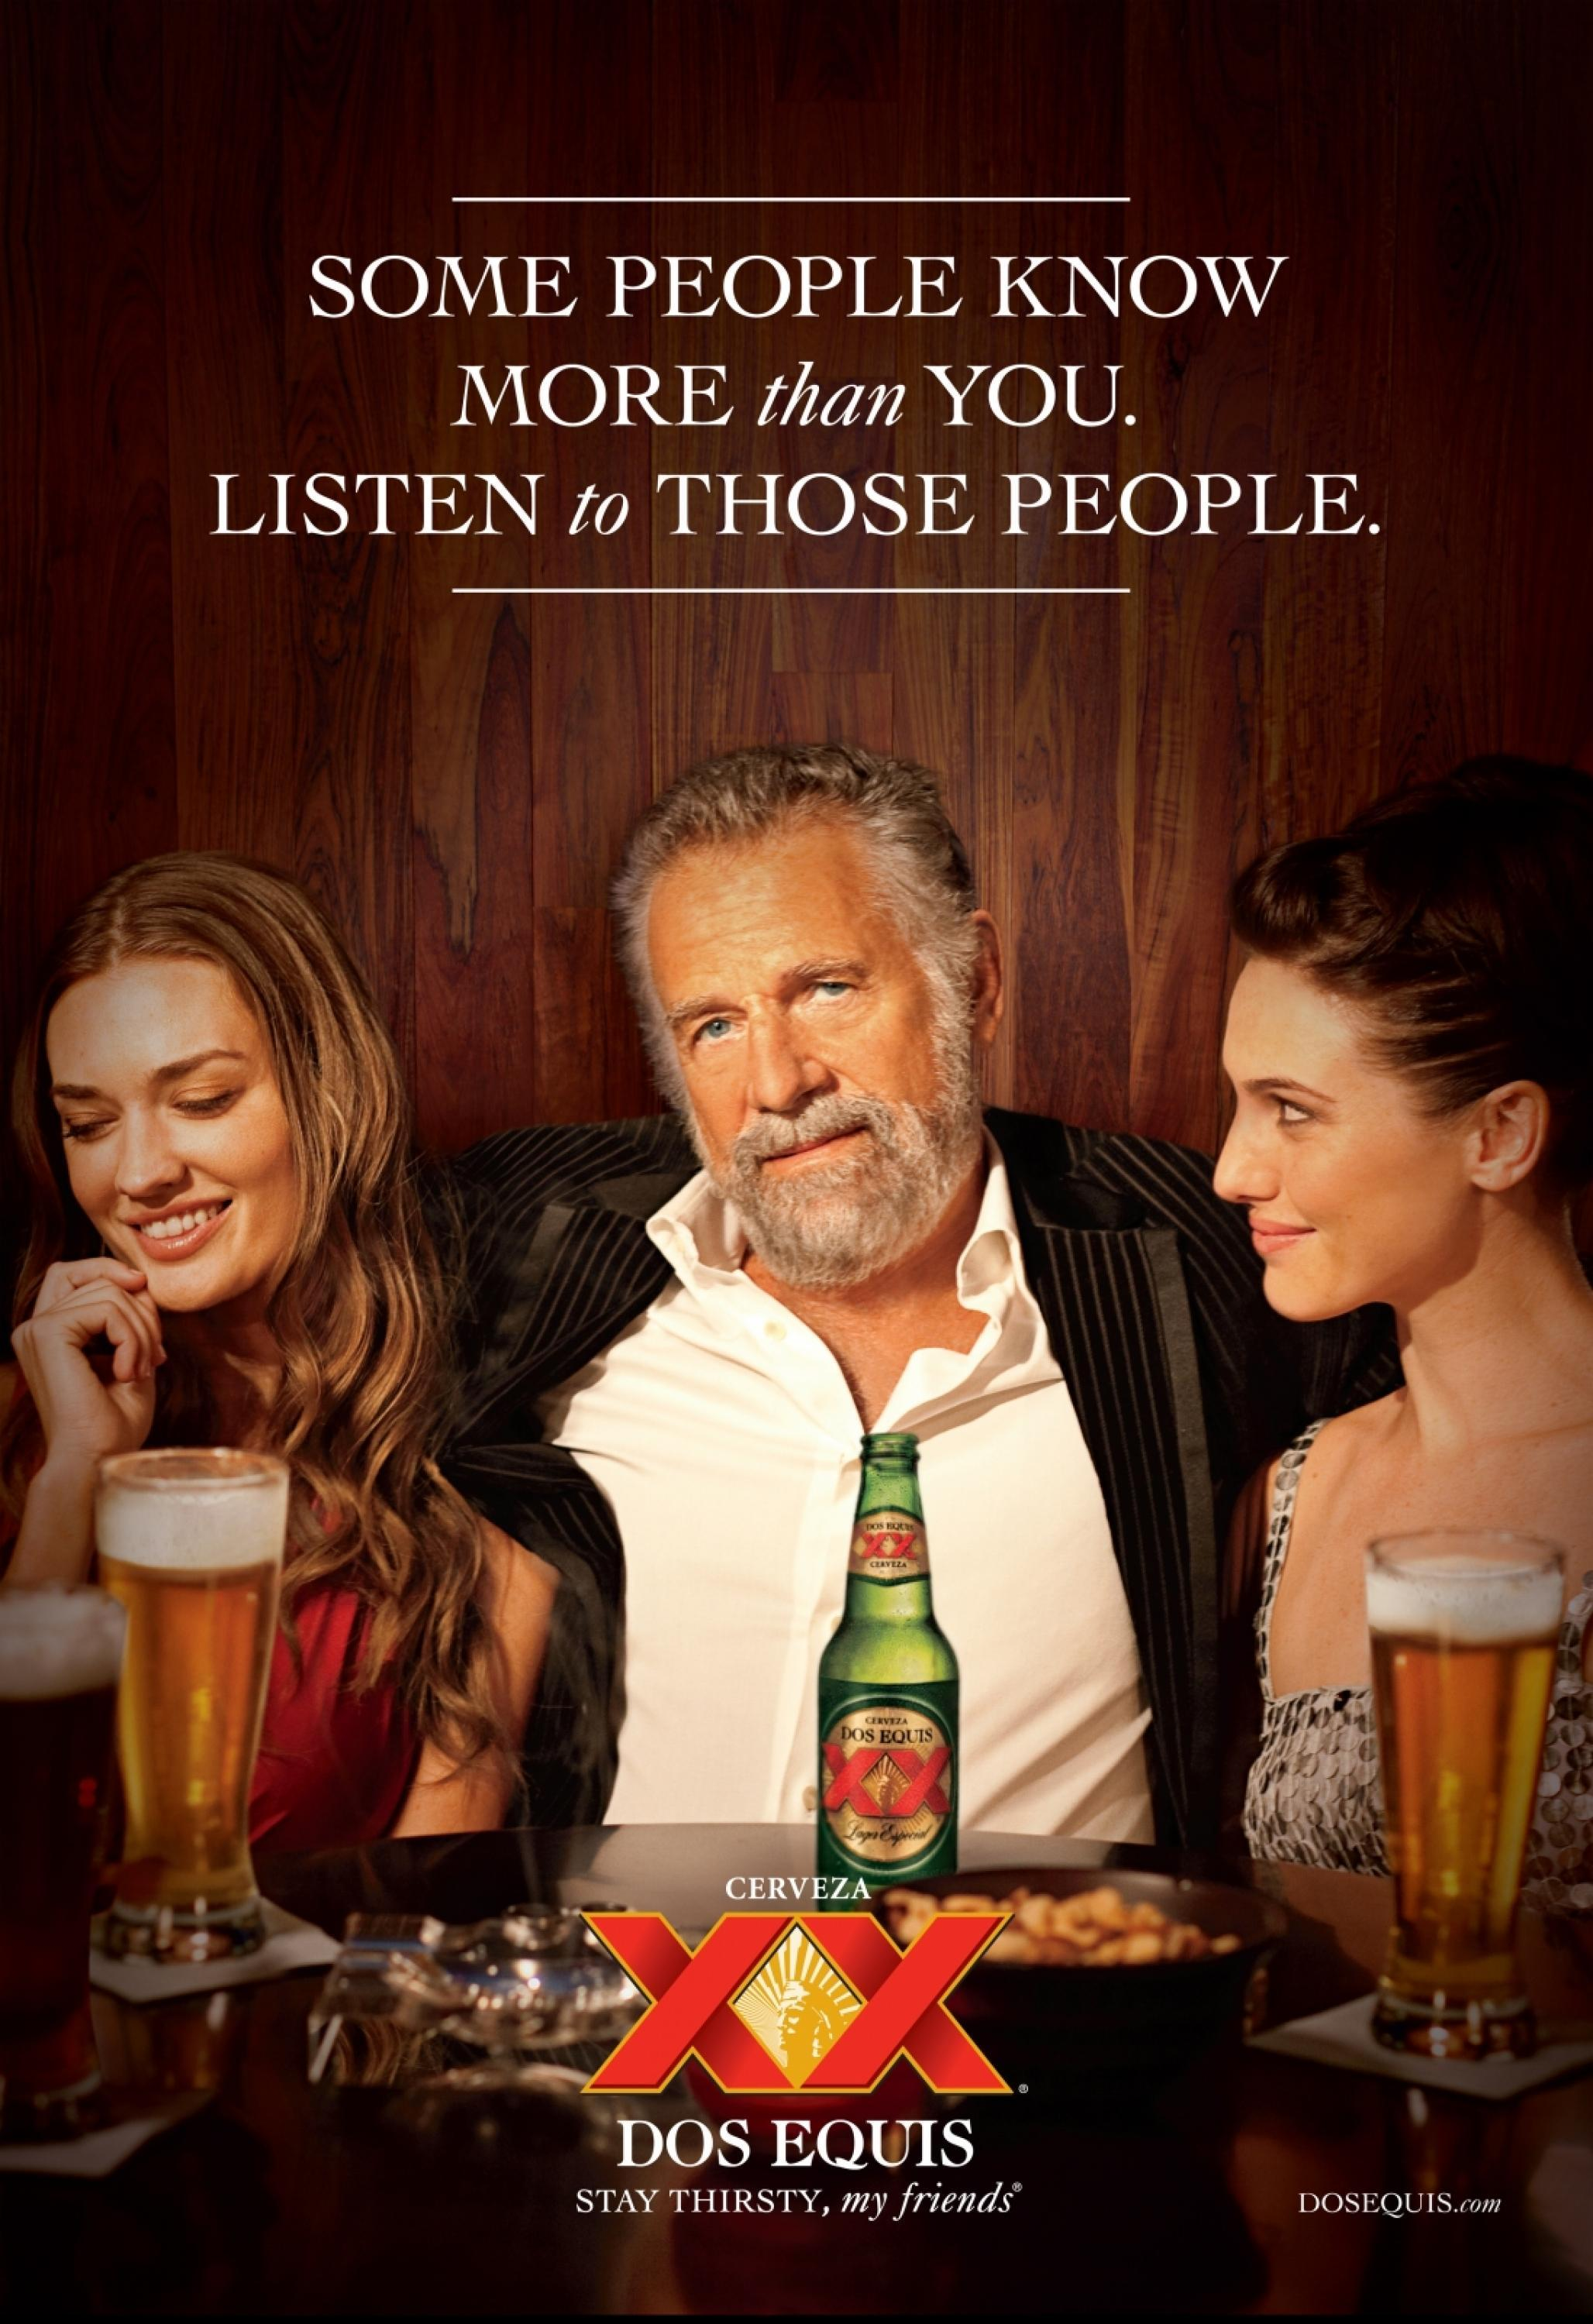 why beer ads should be banned Two thirds of australians say alcohol ads should be banned from sport, according to research from the salvation army reported by the drum last week tim lindsay, ceo of d&ad, sees things differently.